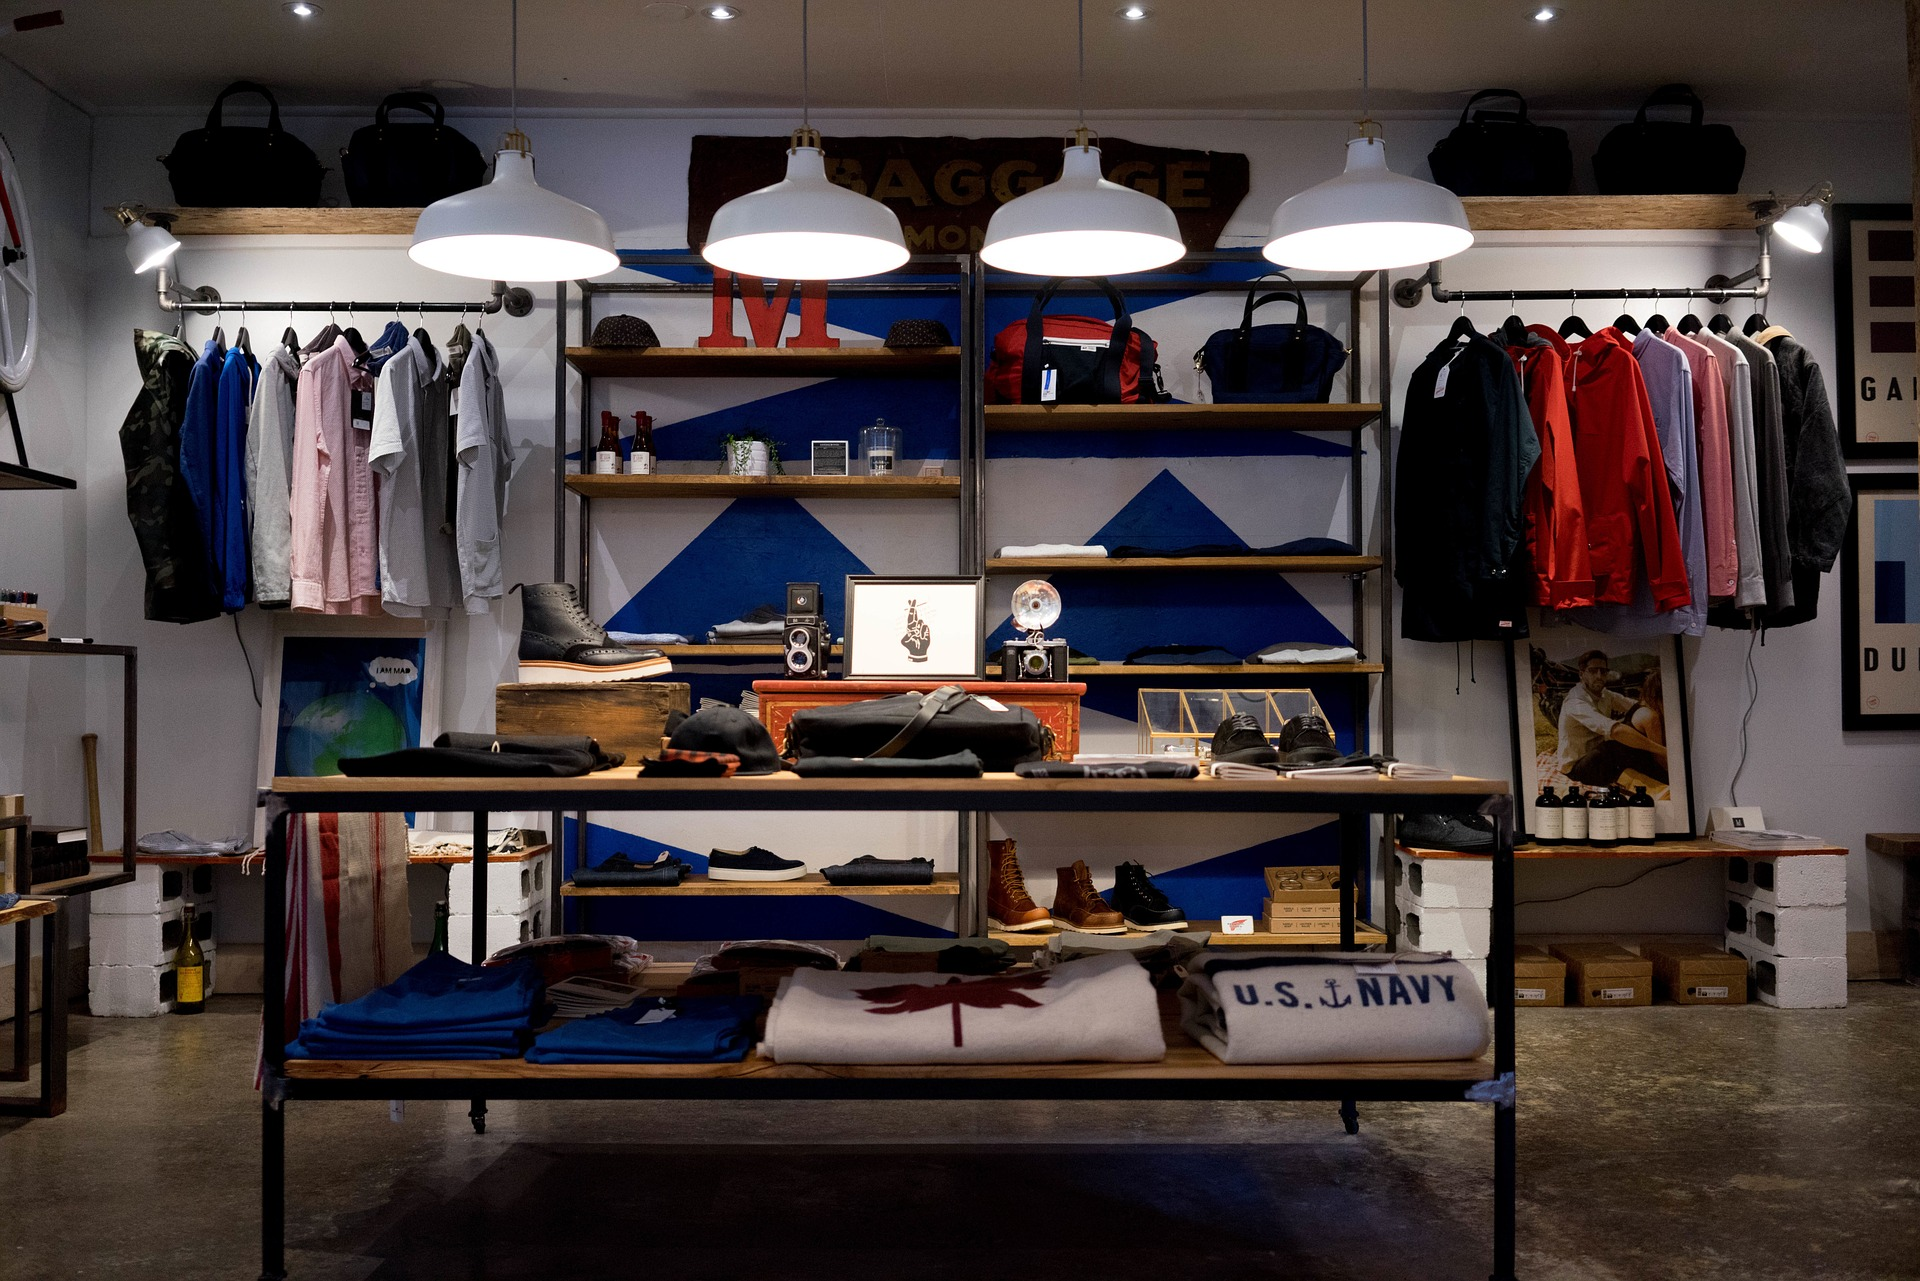 shelves with clothing and dim lighting